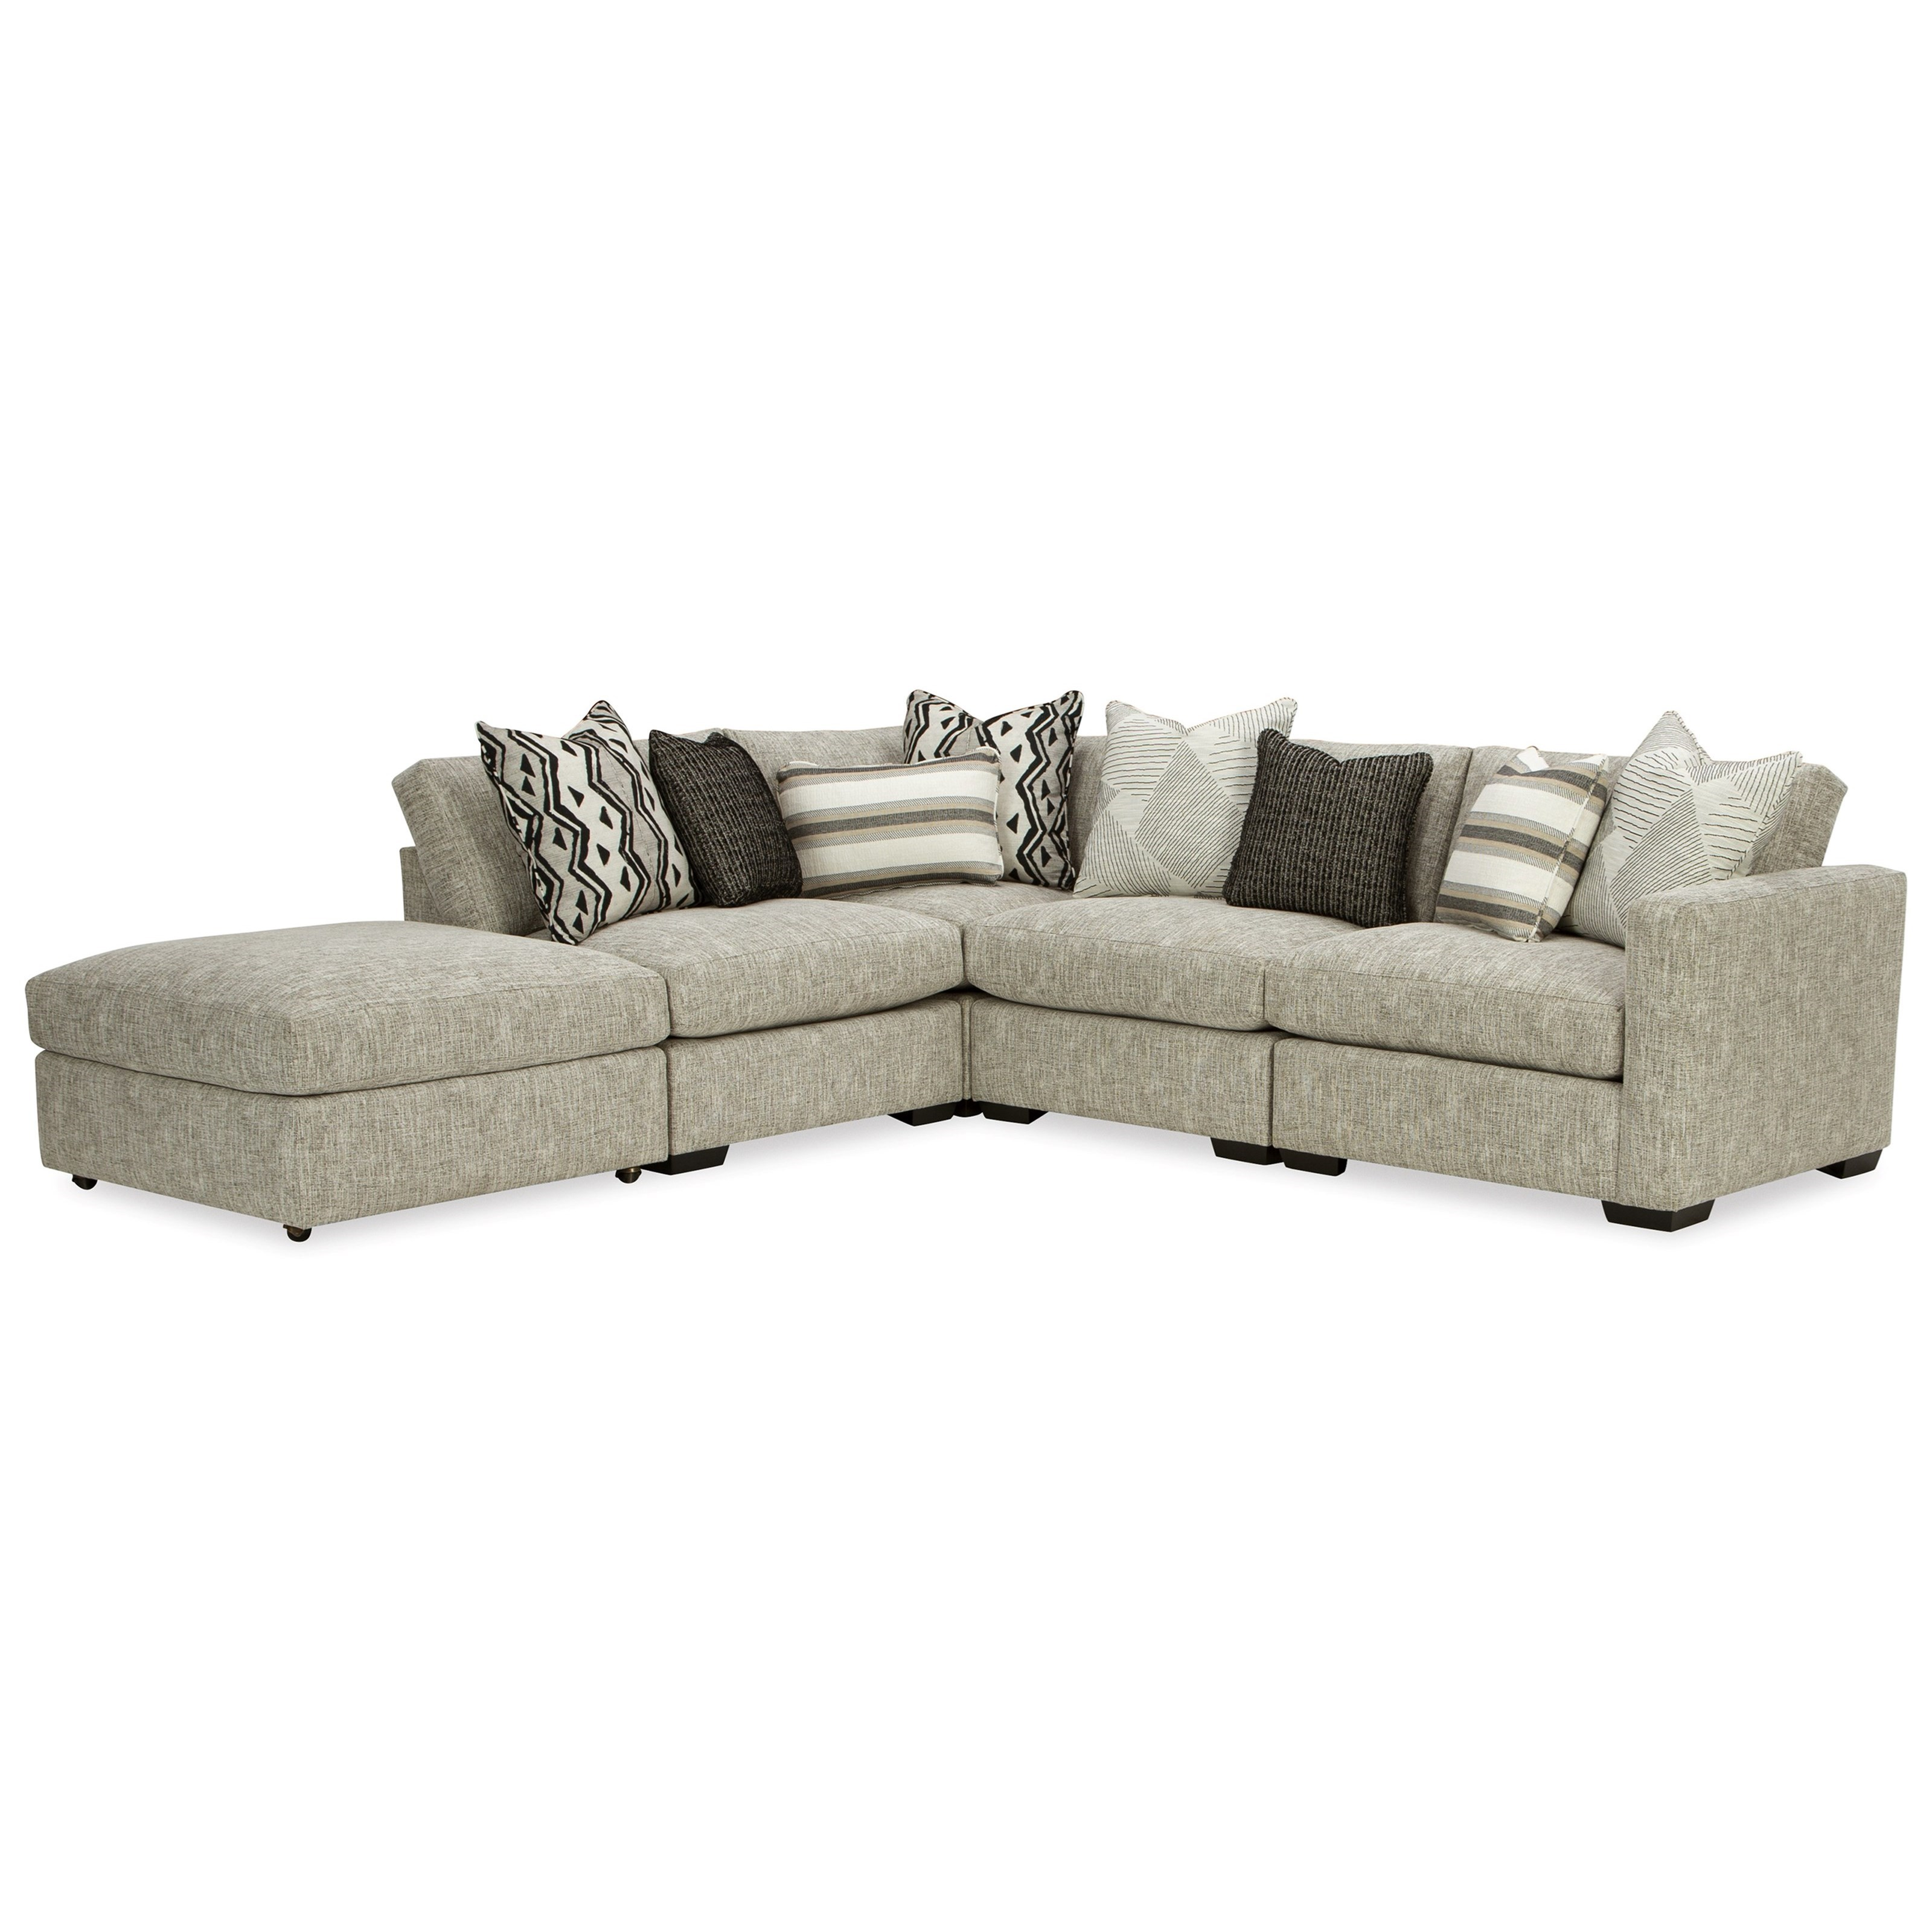 792750BD 5-Piece Sectional Sofa by Craftmaster at Prime Brothers Furniture